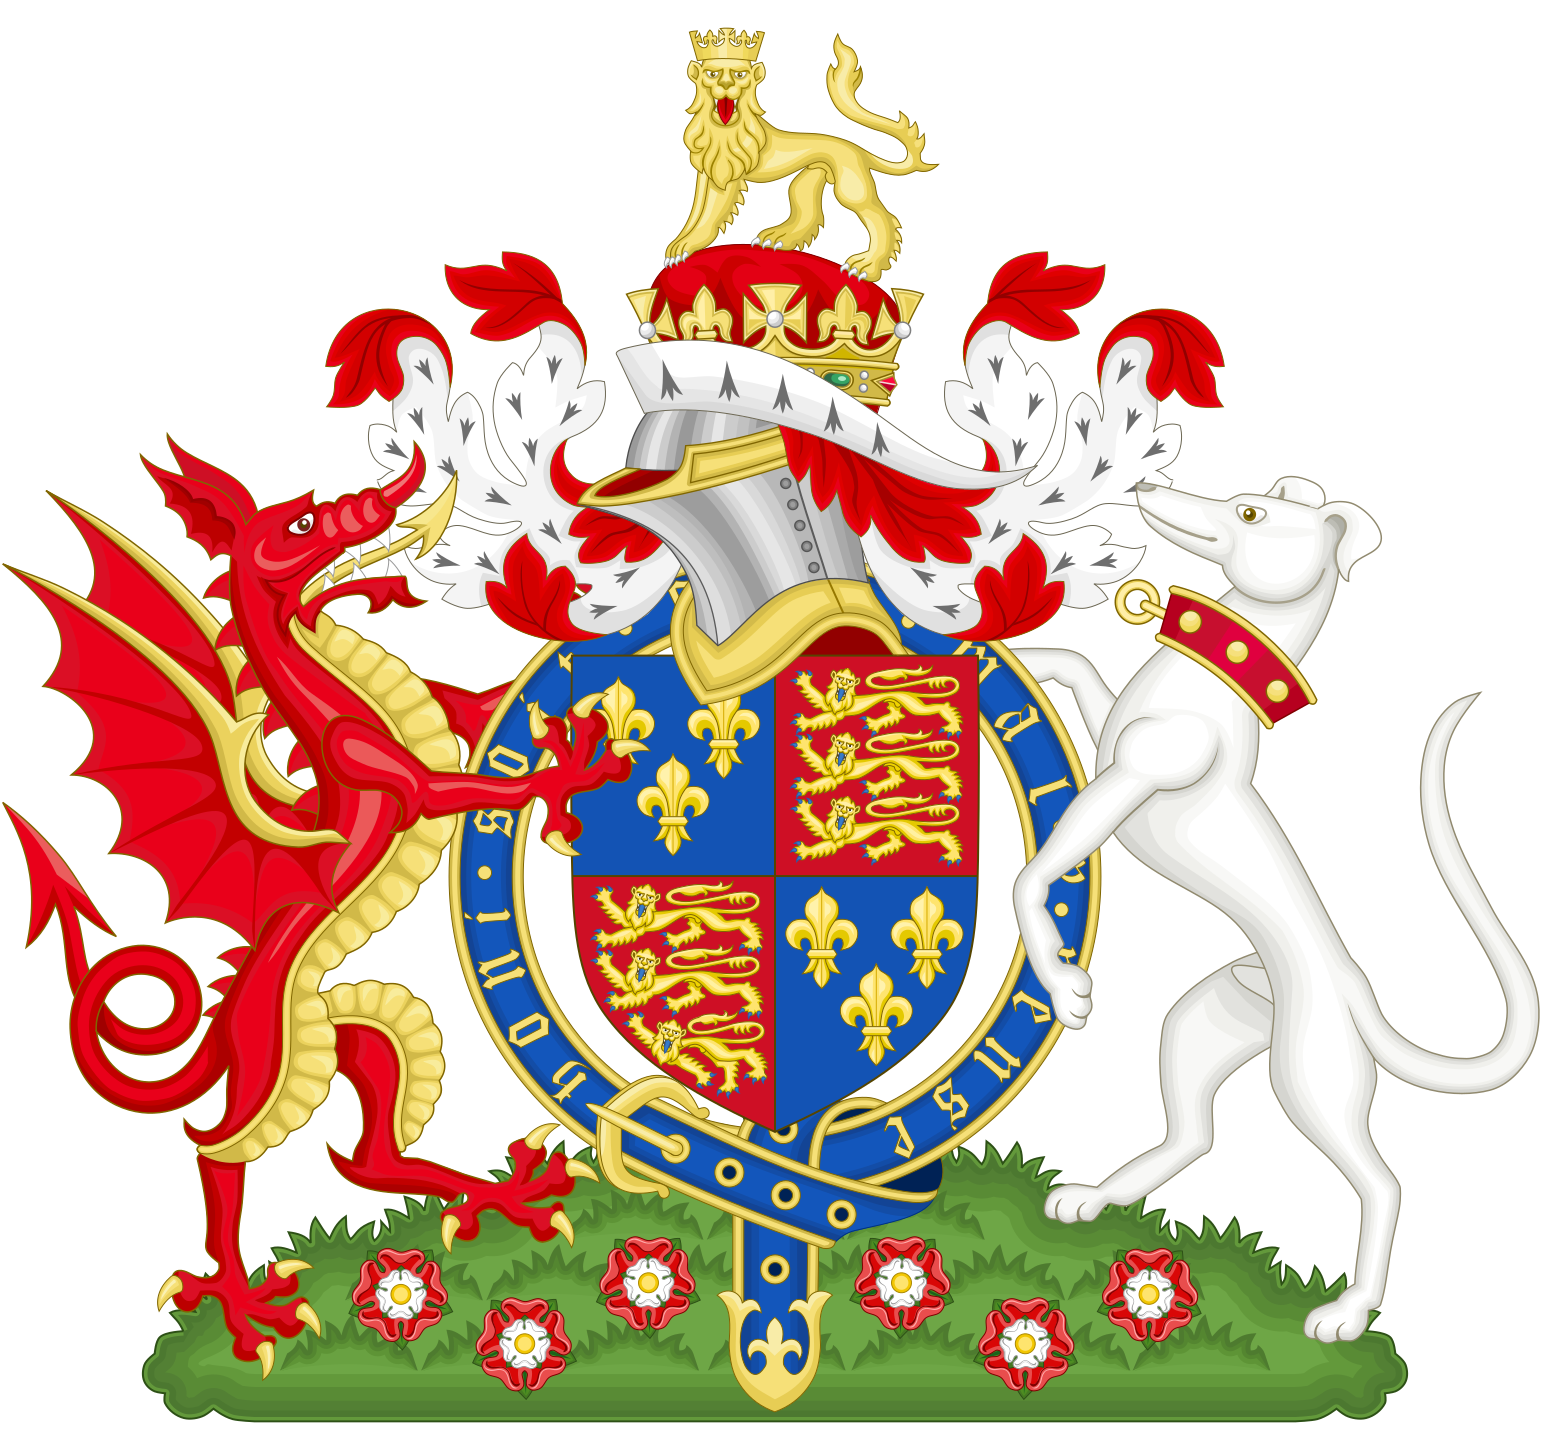 Coat of Arms of Henry VII of England, 1485-1509